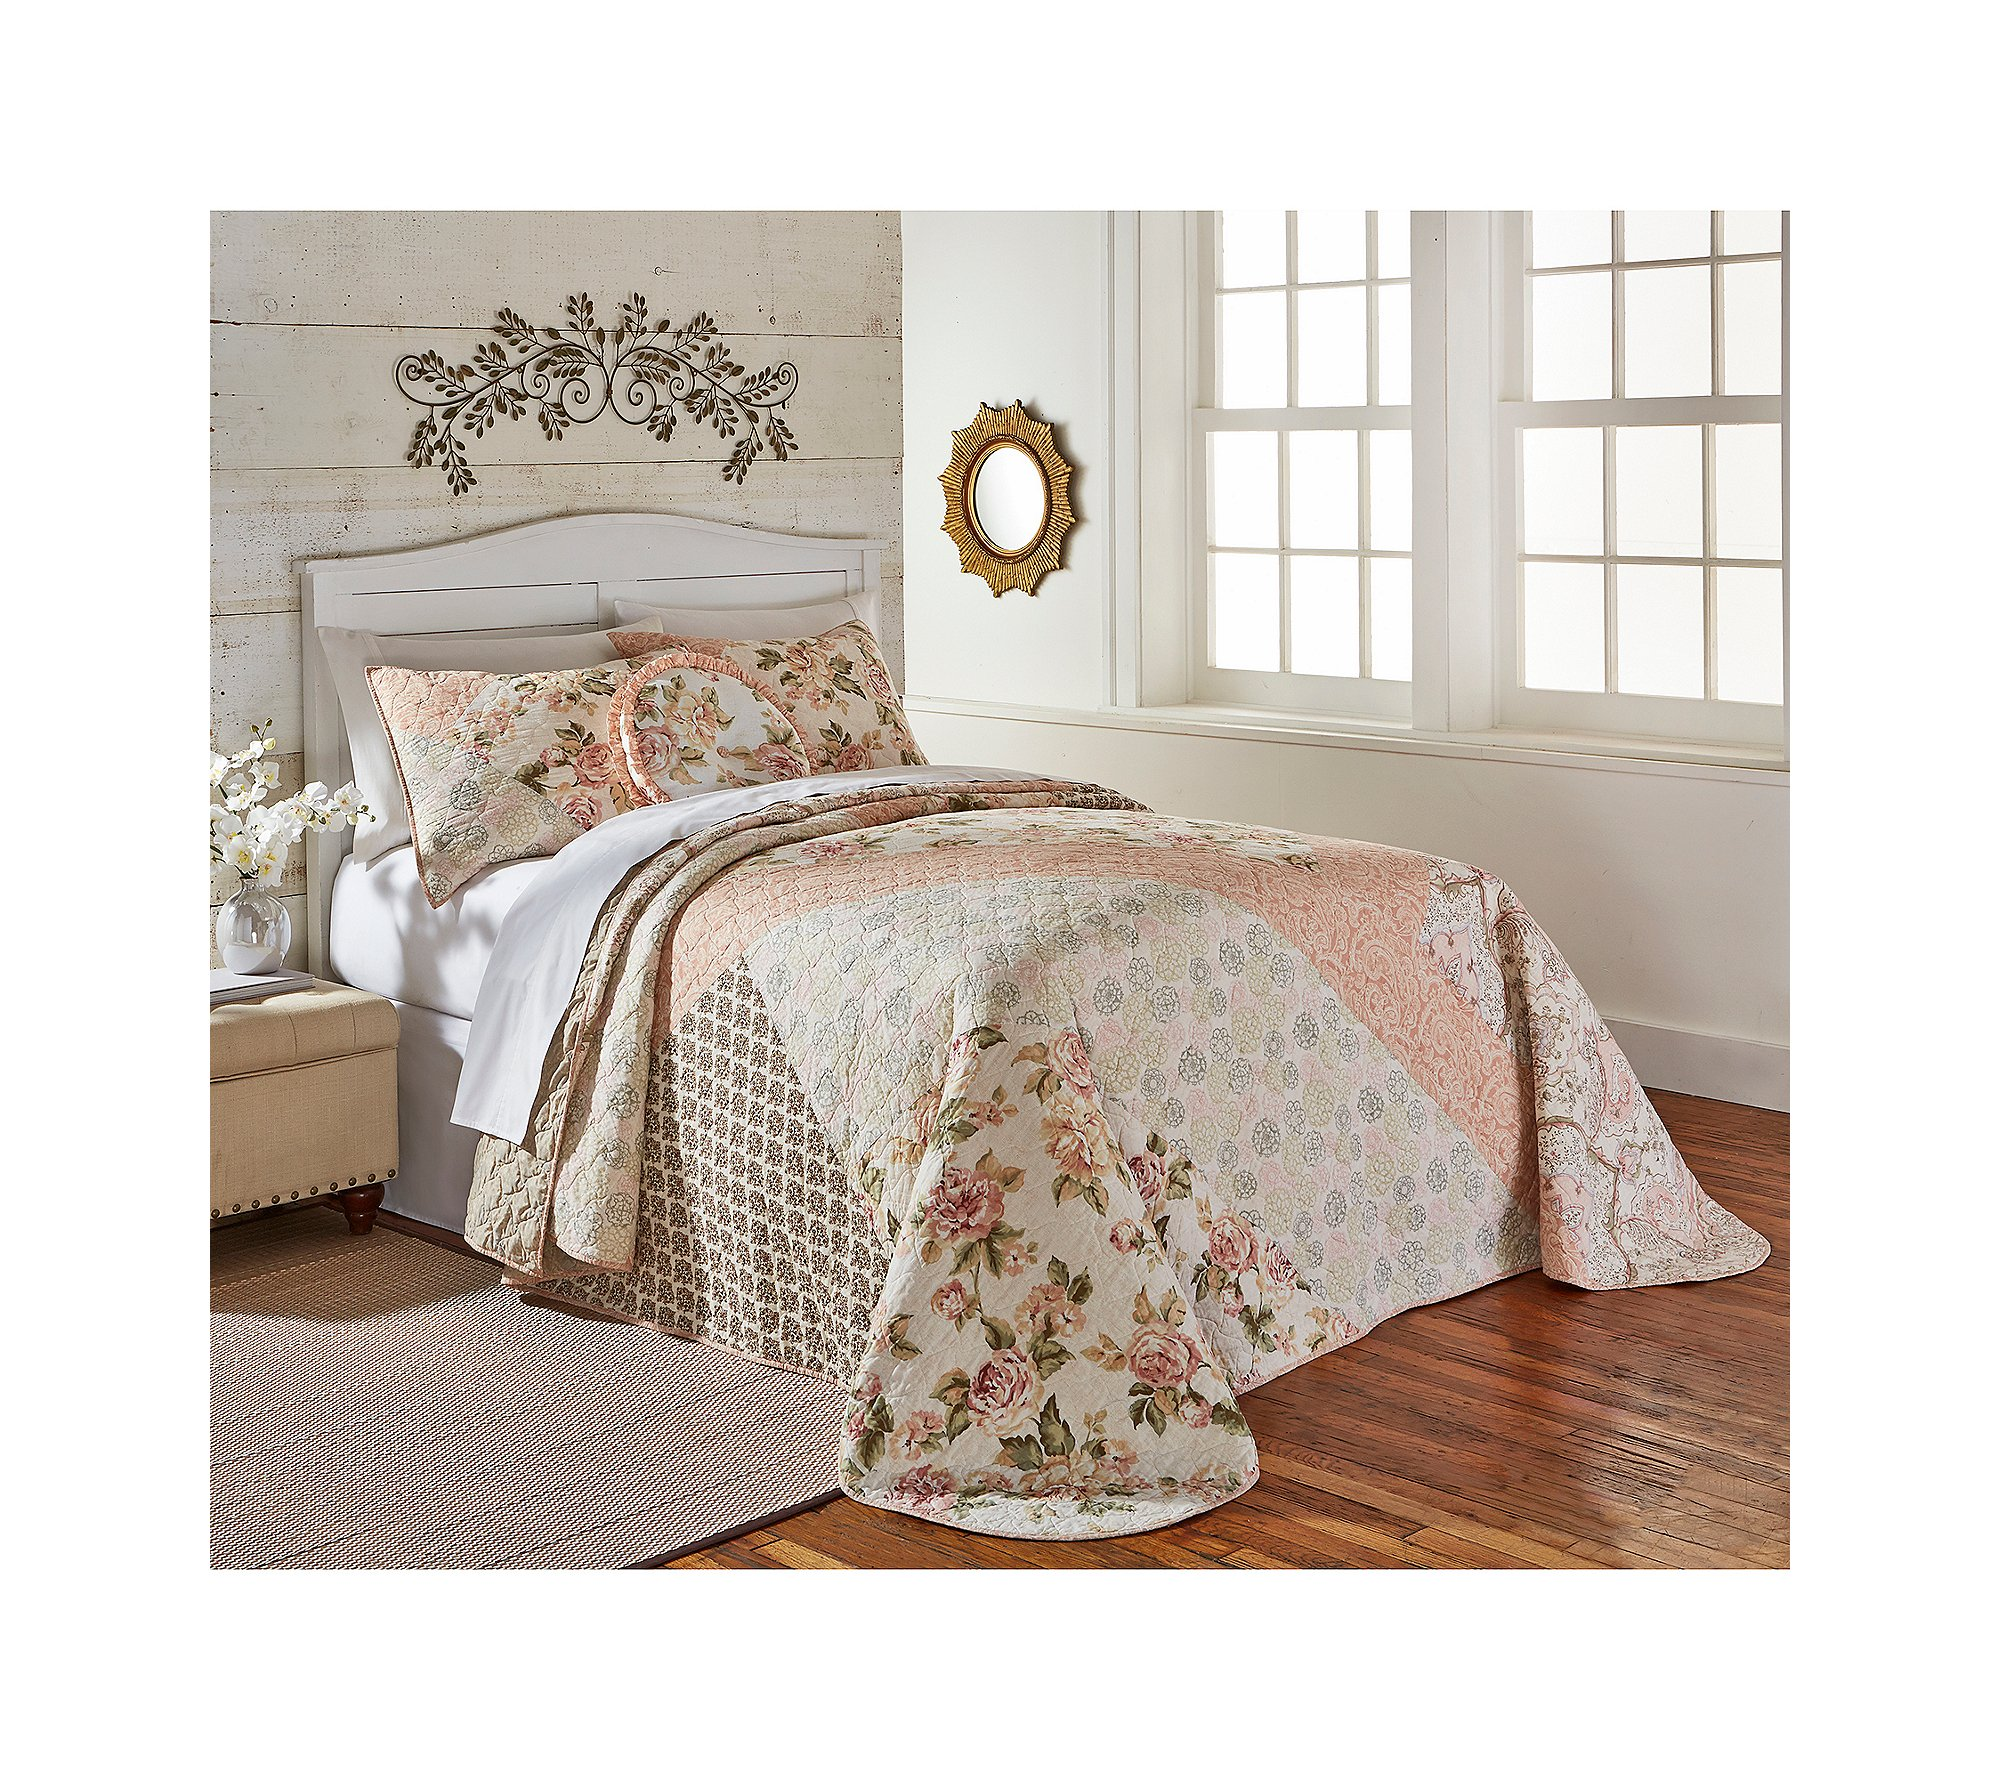 Living Quarters Rose And Lace Bed Spread Queen Bedpsread